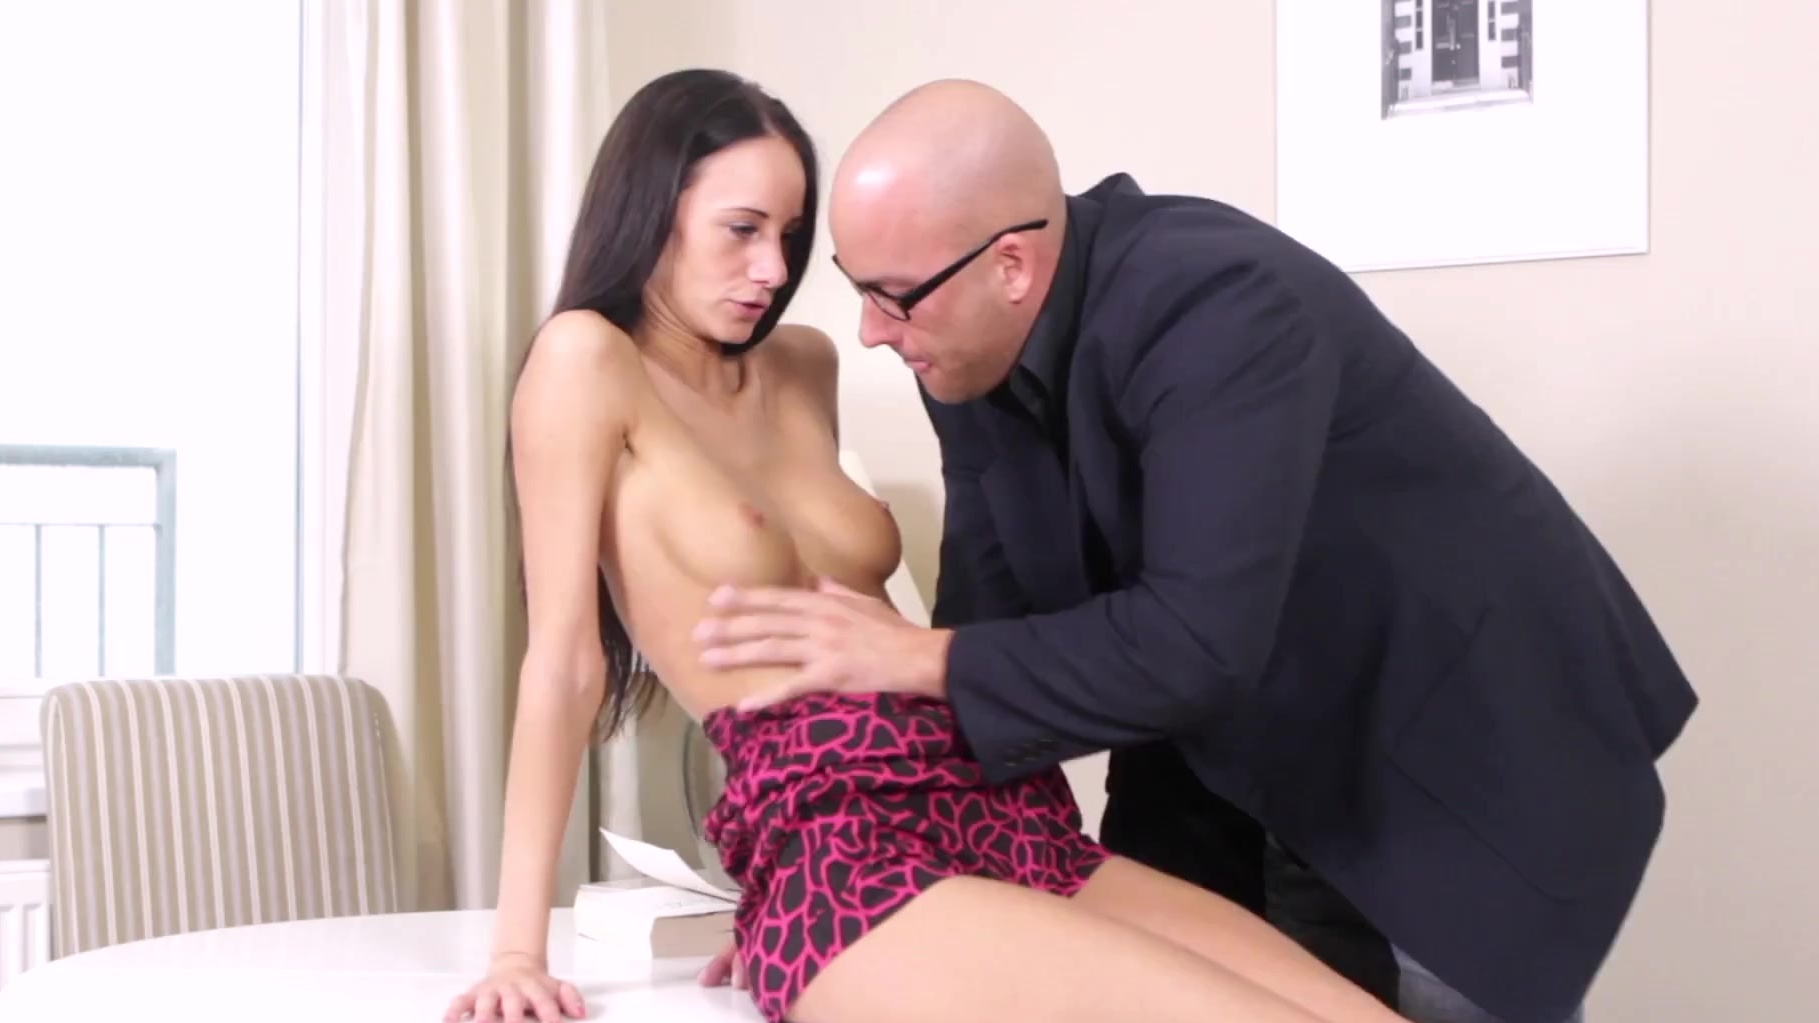 veronika sucked & shoved her tricky old teacher's dick inside her